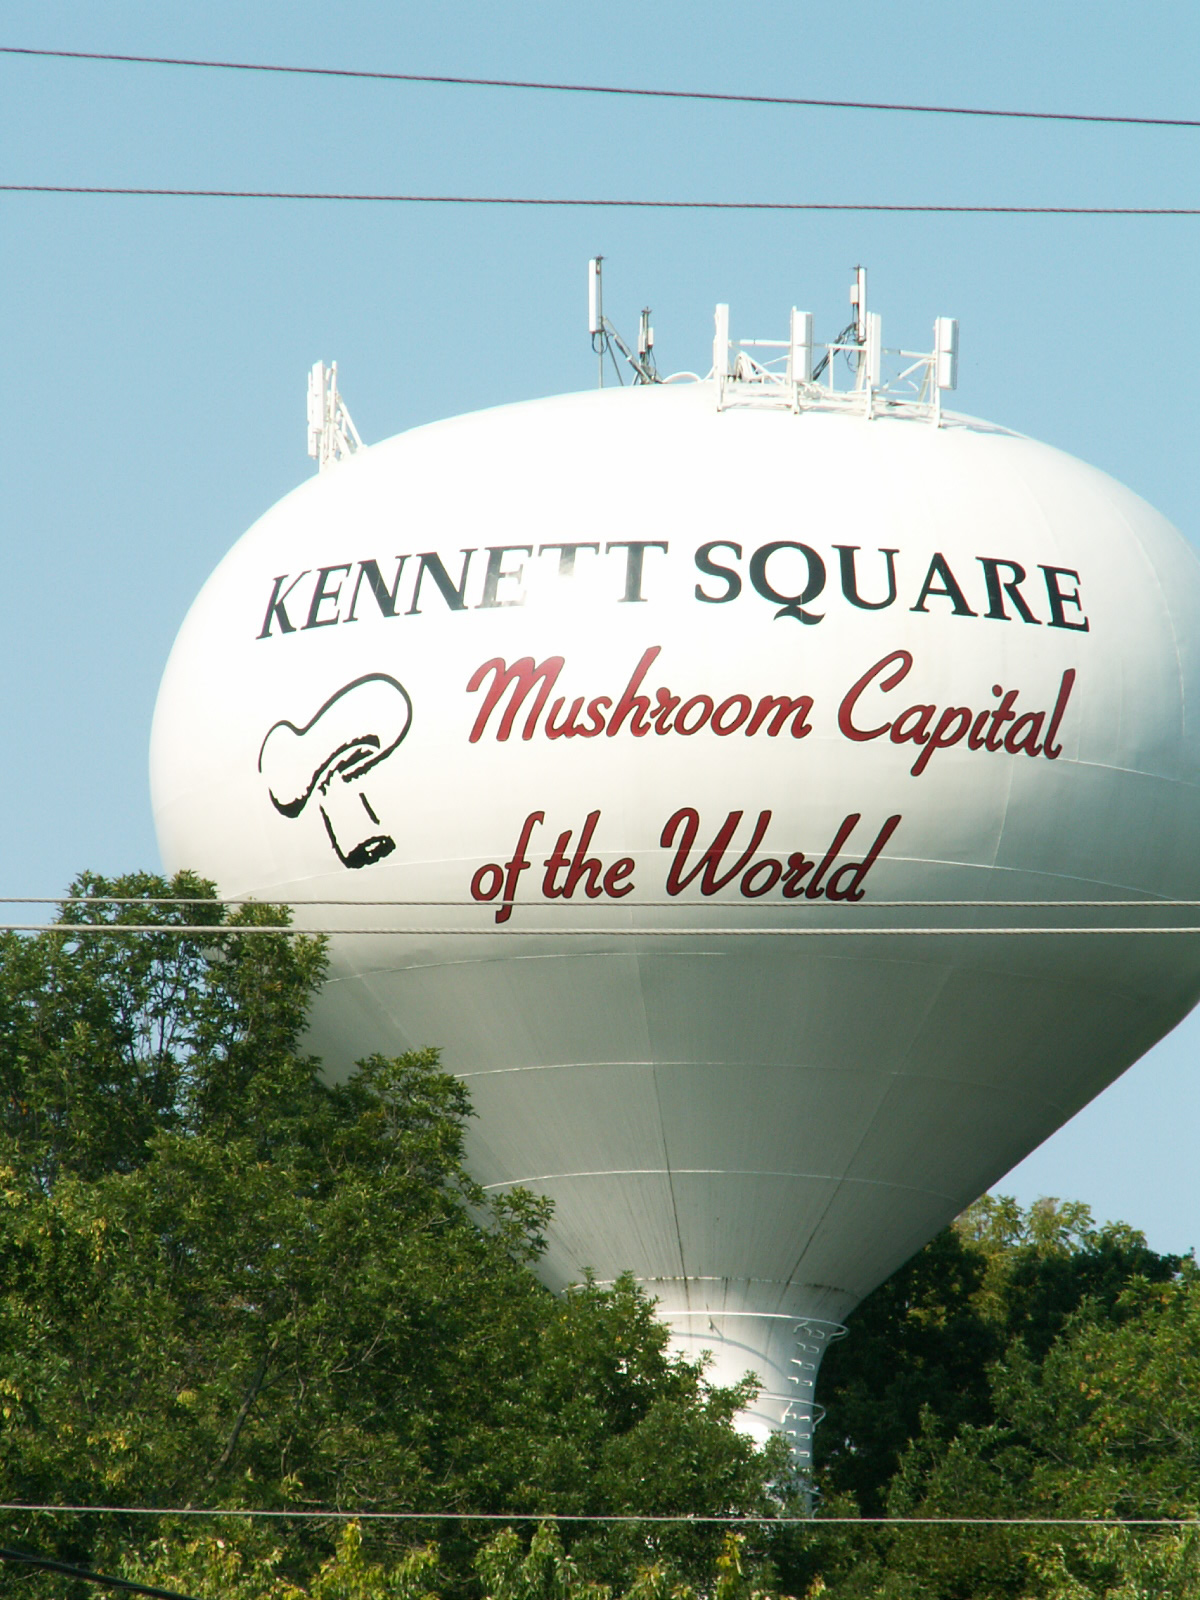 Kennett Square's Water Tower proclaims it the Mushroom Capital of the World